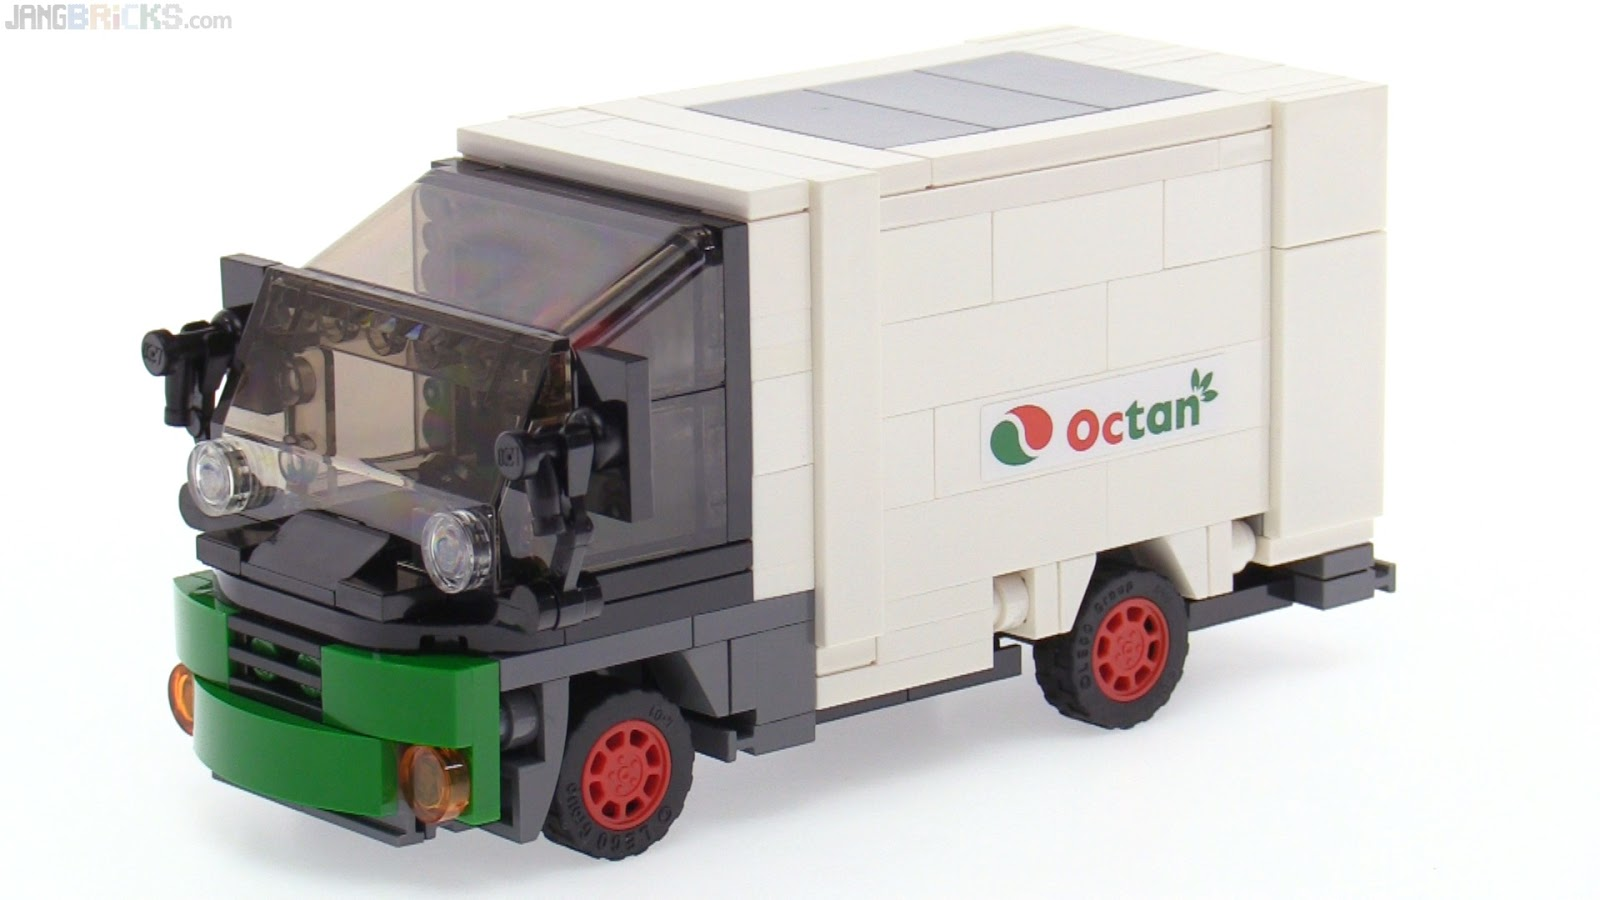 lego cars 2 commercial with Custom Lego Light  Mercial Truck Moc on Kia Toy Ebay 23vHSk8o 2ZDHXbfCfAXIEoAOQMggKXtnbT2g olzv0 moreover Lego Bricks   Image likewise Five Awesome Lego Cars Feature further mercial Responders likewise Business Model Canvas Ex les.